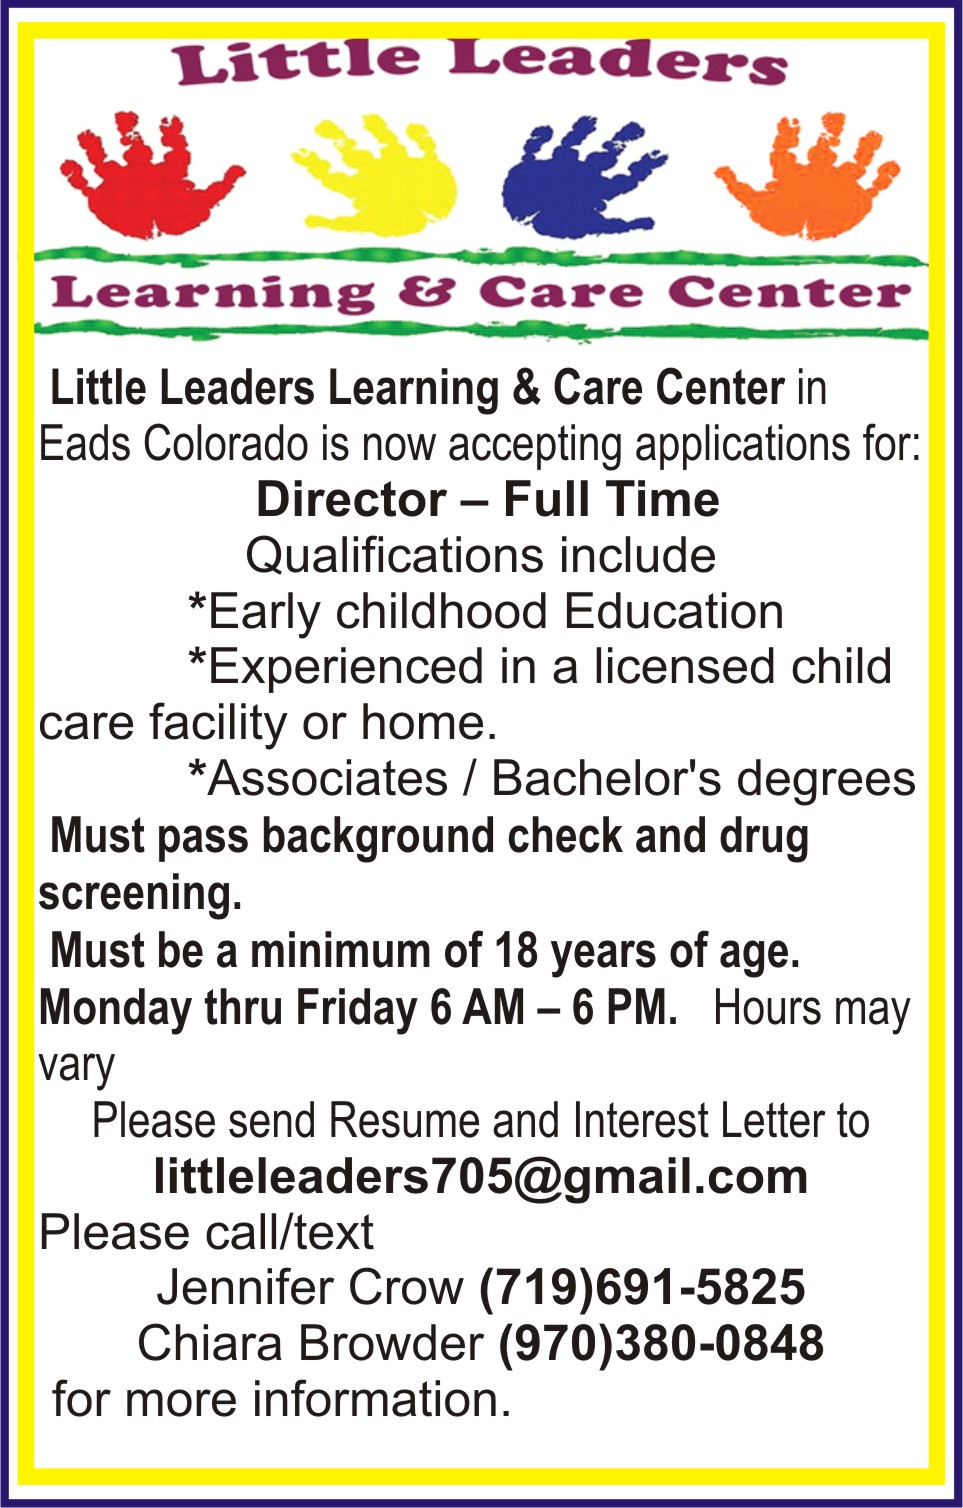 AD 2020-10 Help Wanted - Daycare Director